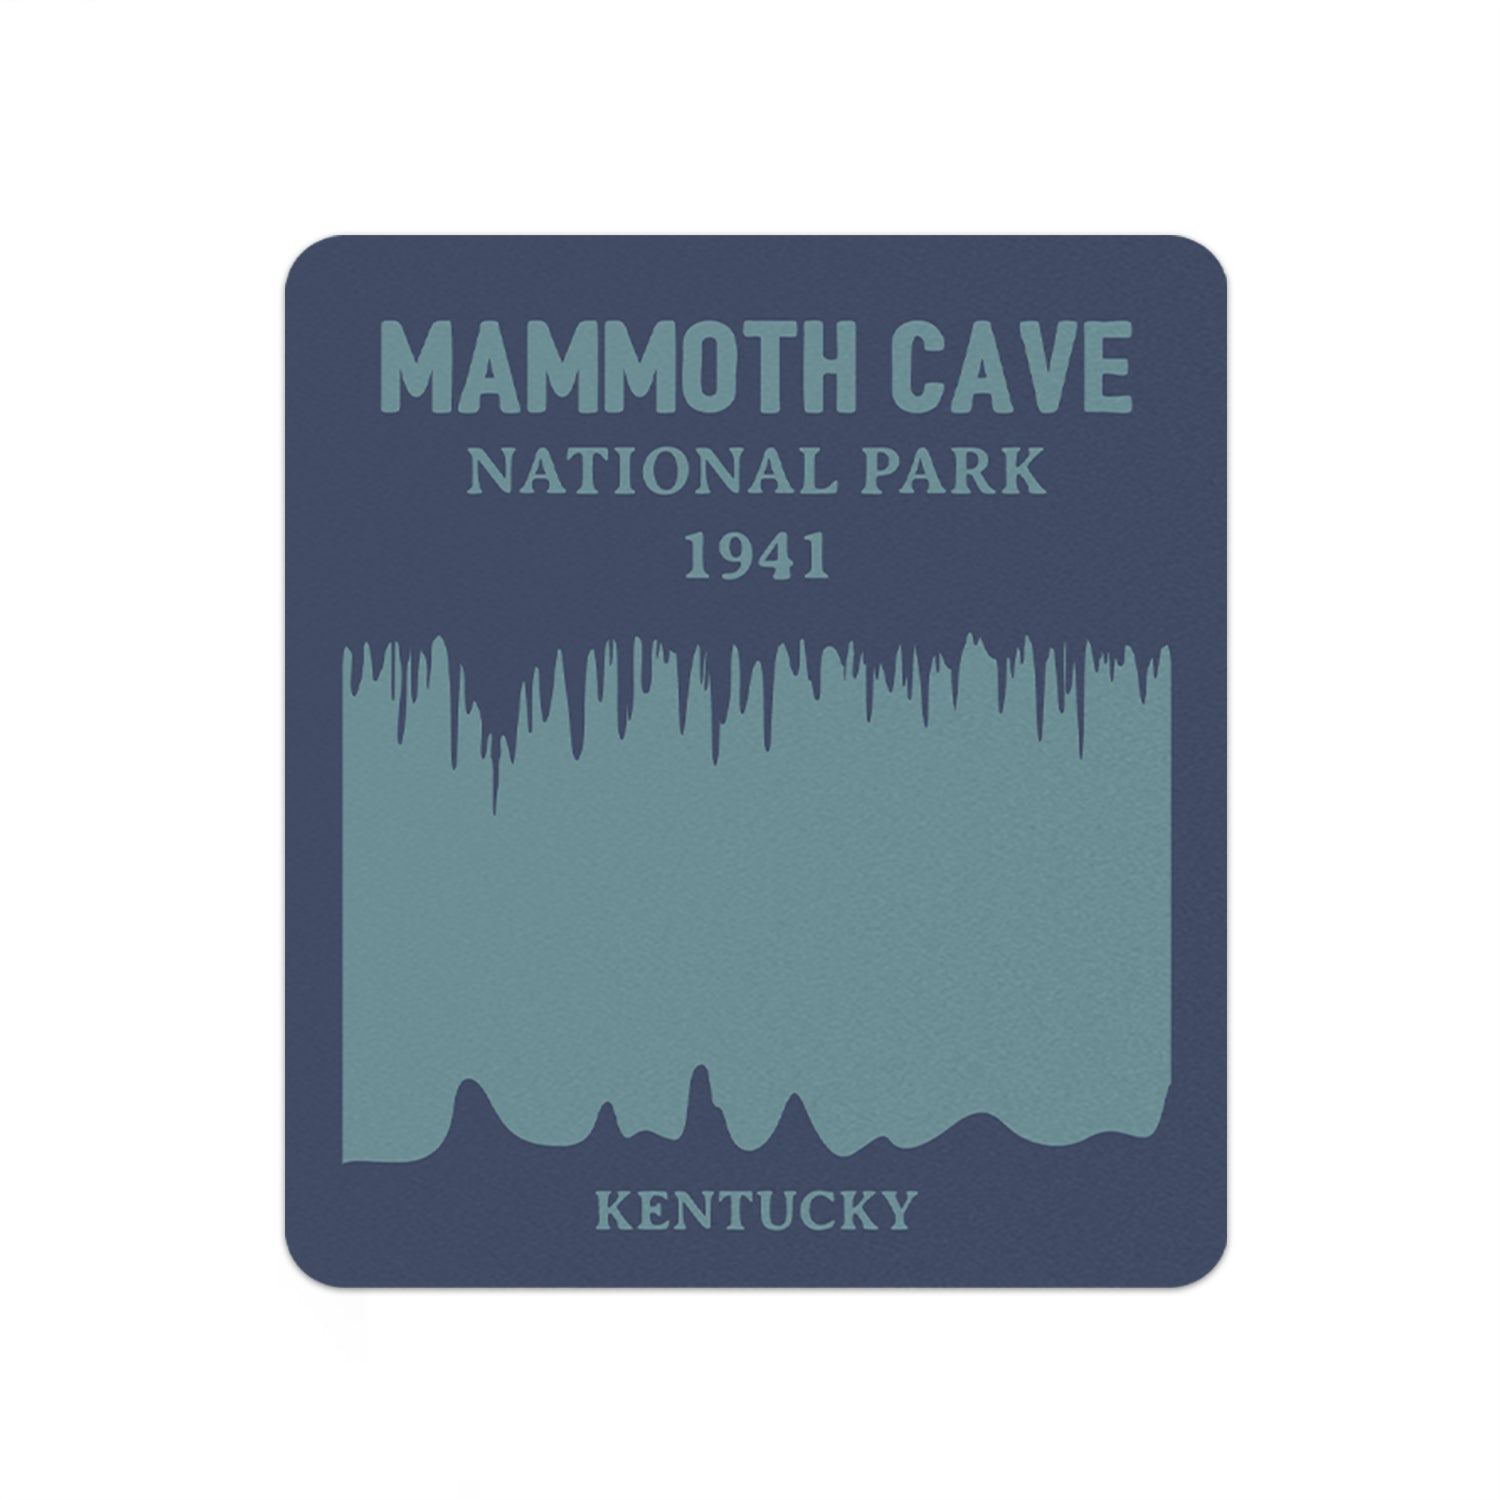 Mammoth Cave National Park Sticker | National Park Decal - National Park Life